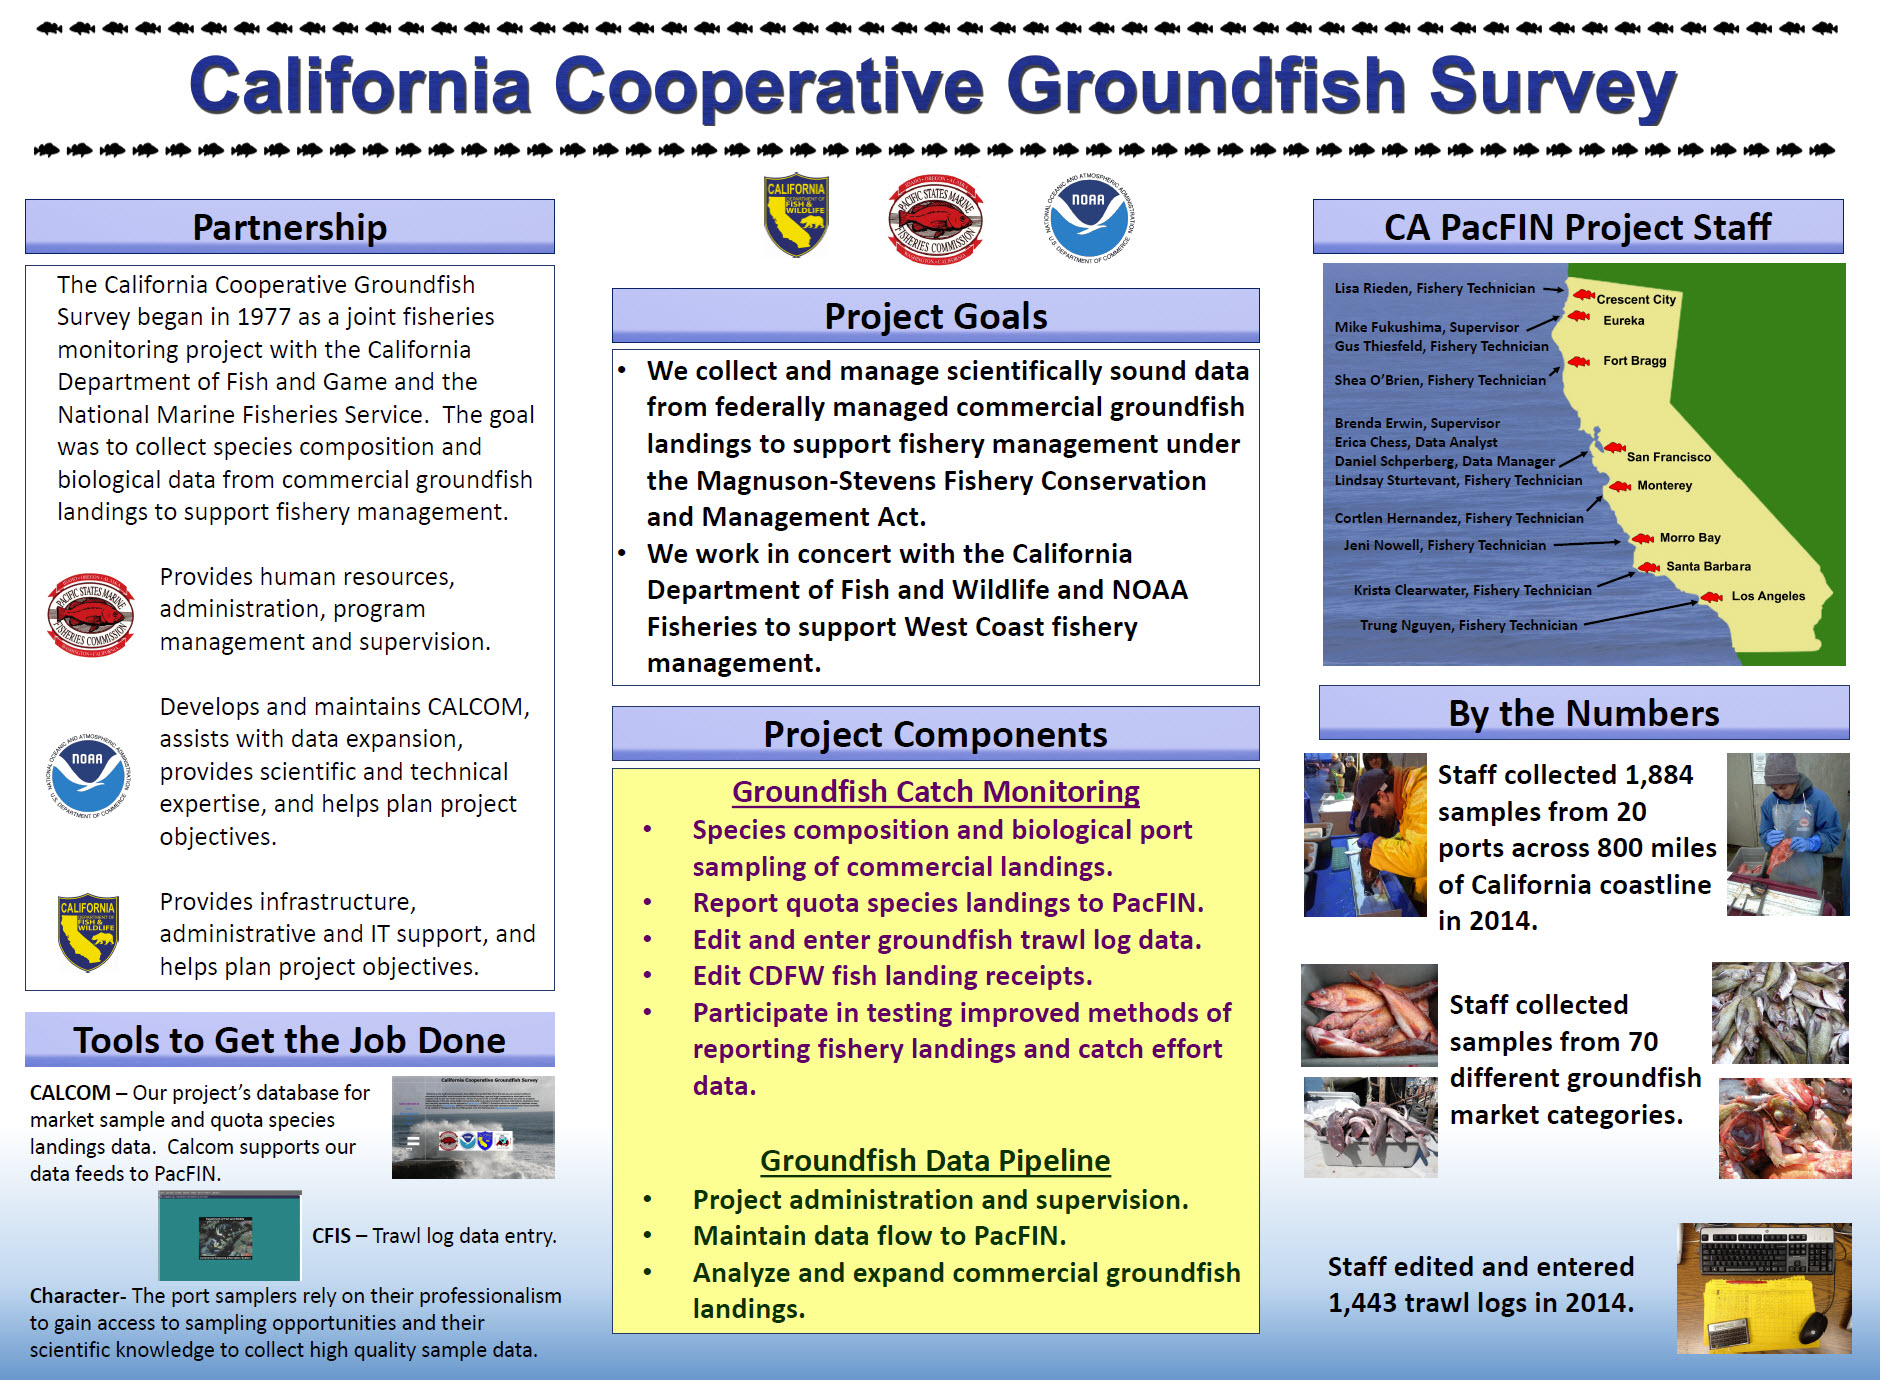 California Cooperative Groundfish Survey - PSMFC 2017